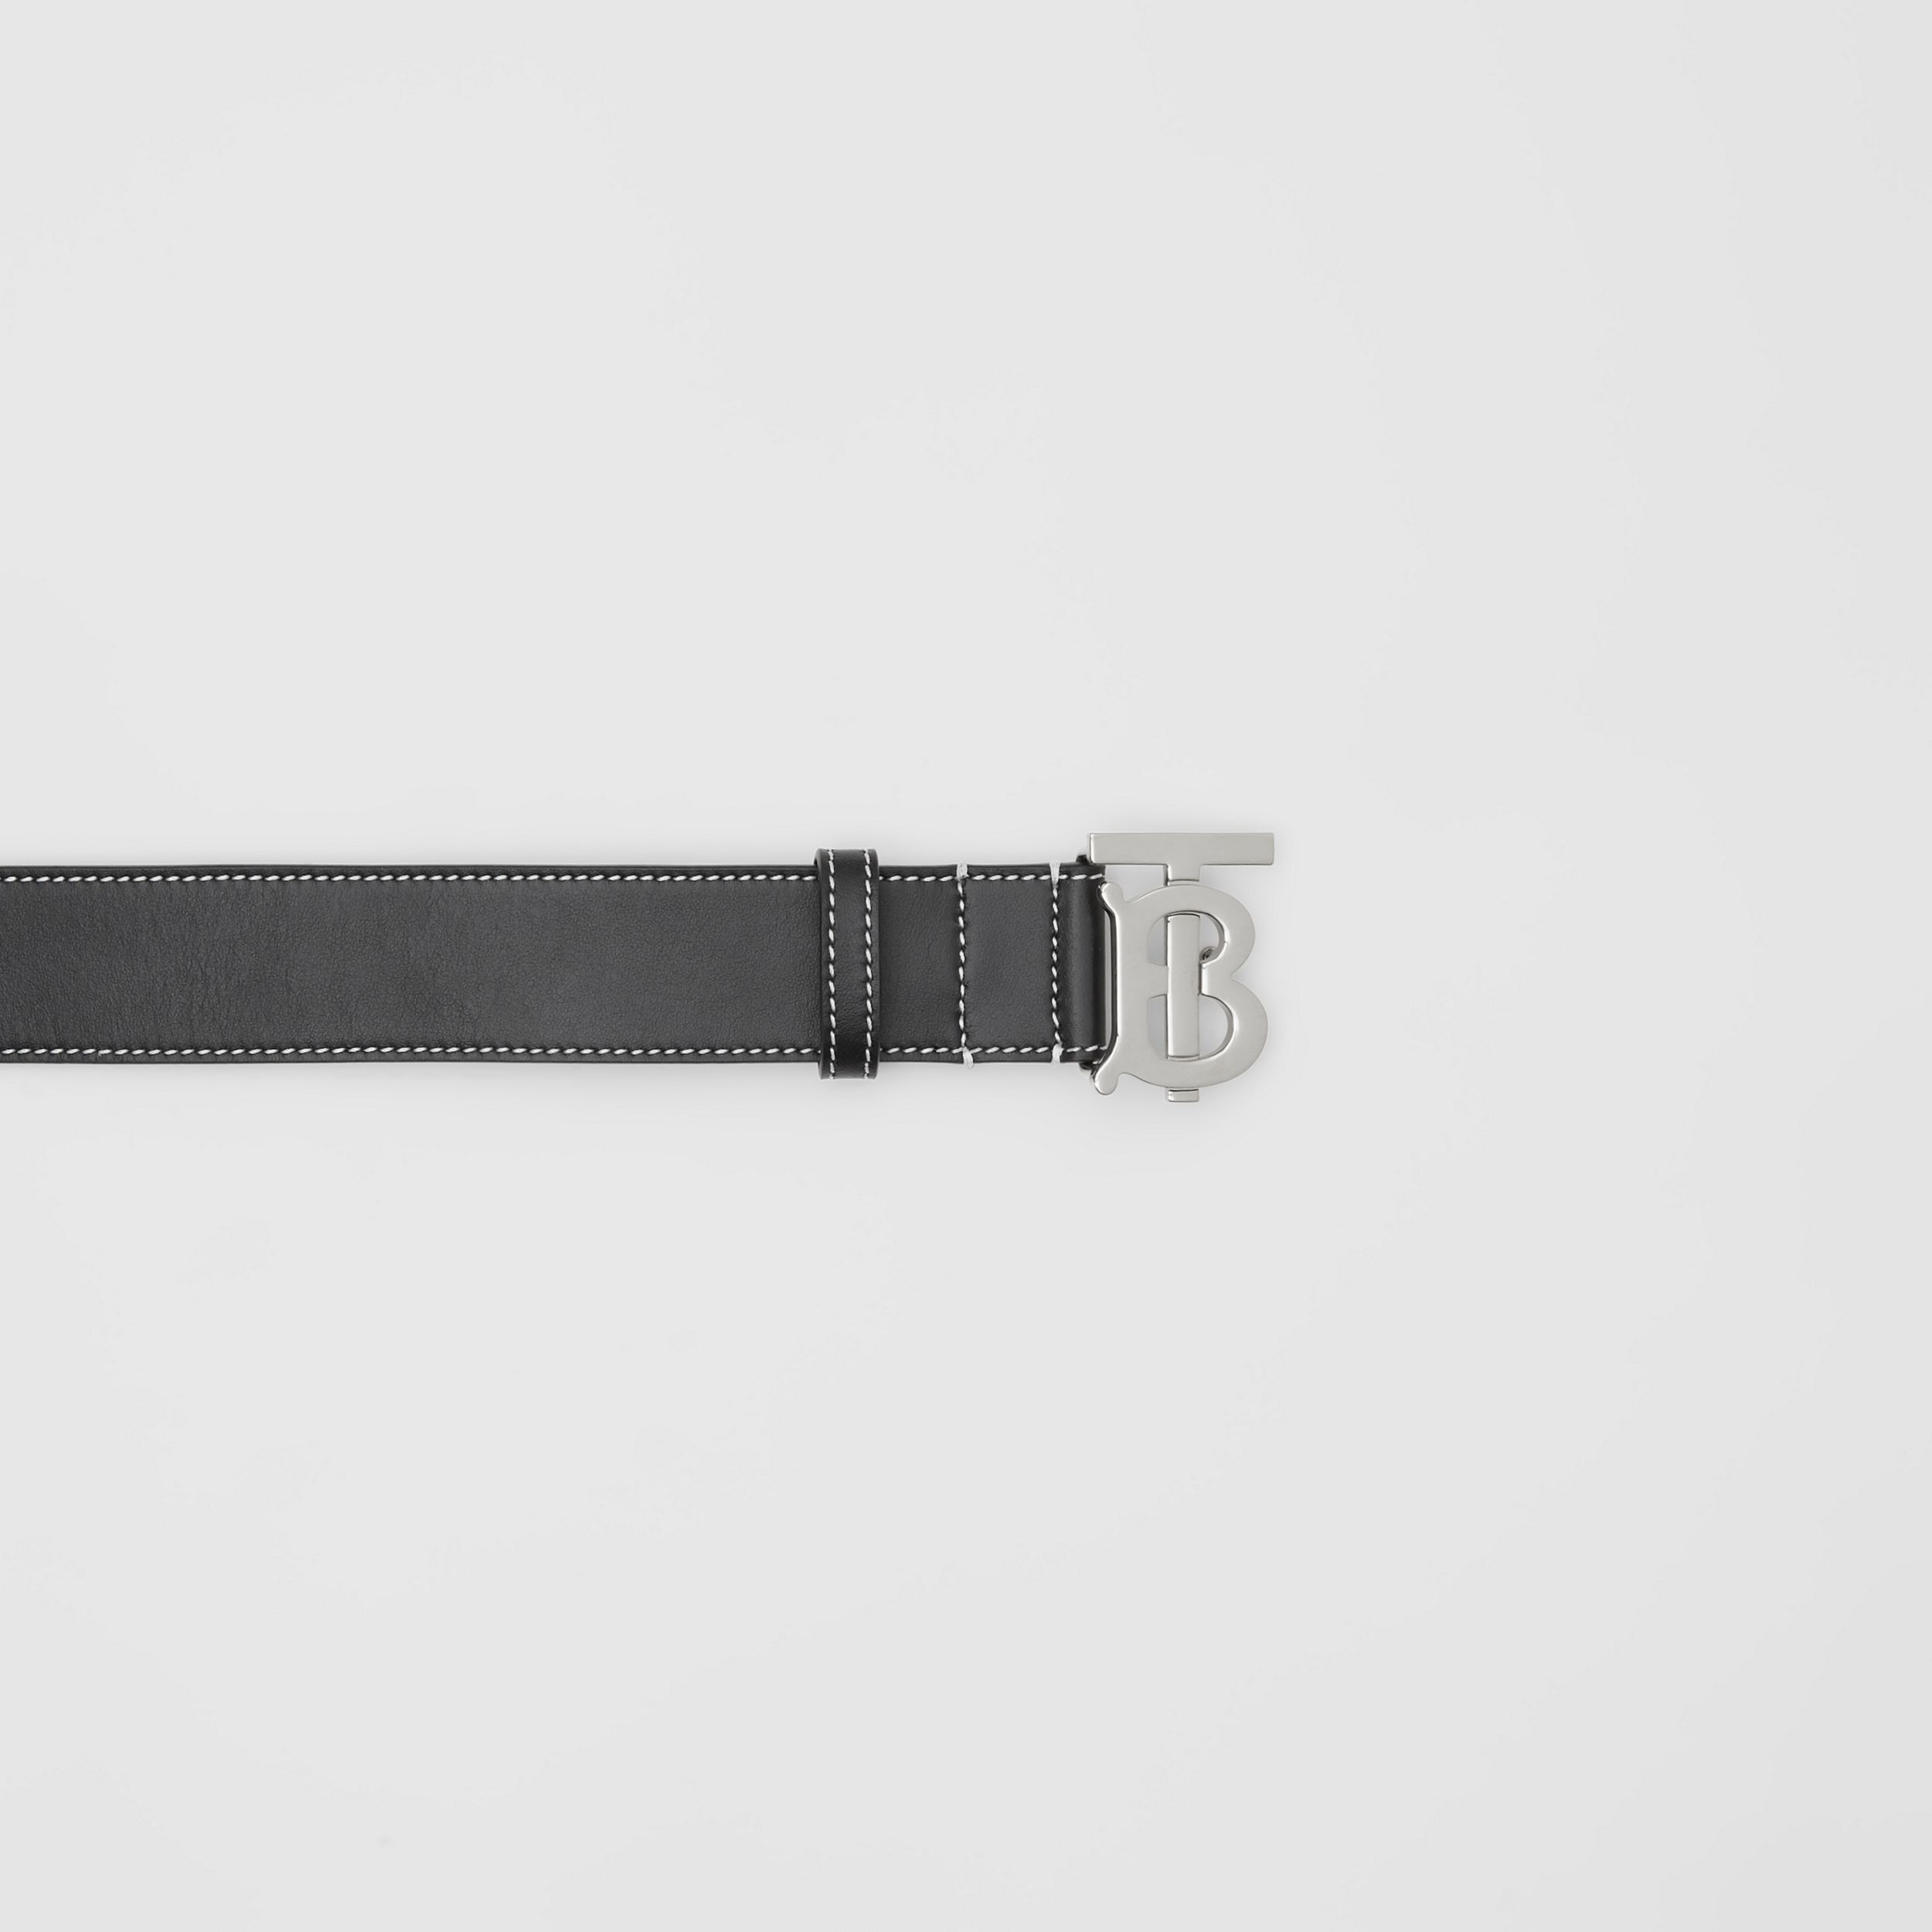 Monogram Motif Topstitched Leather Belt in Black - Men | Burberry Hong Kong S.A.R. - 2